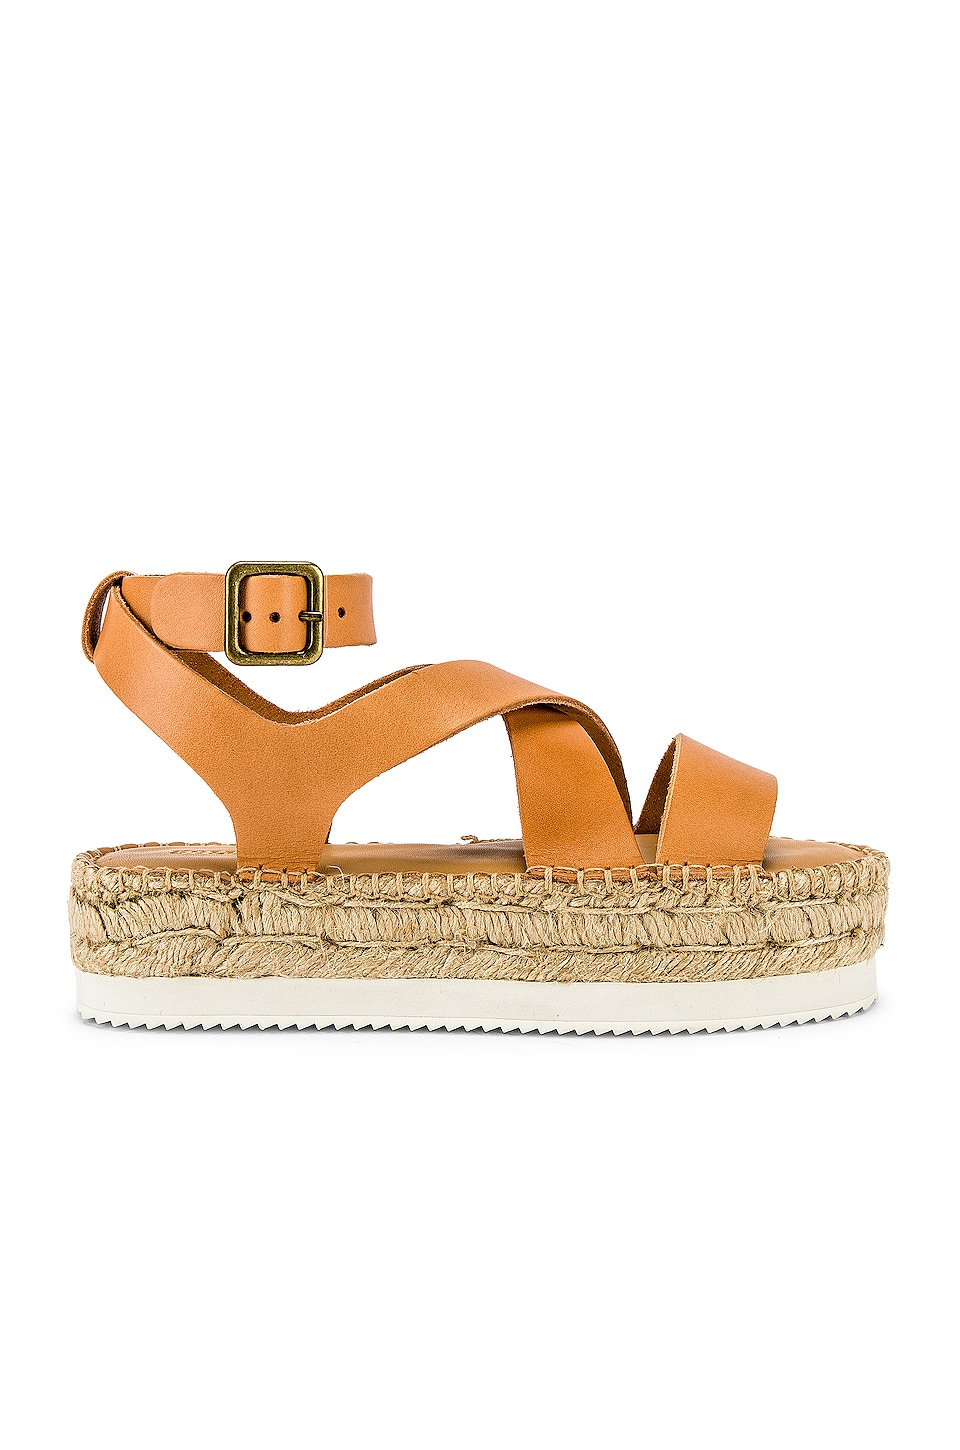 Soludos Olympia Espadrille Sandal in Tan